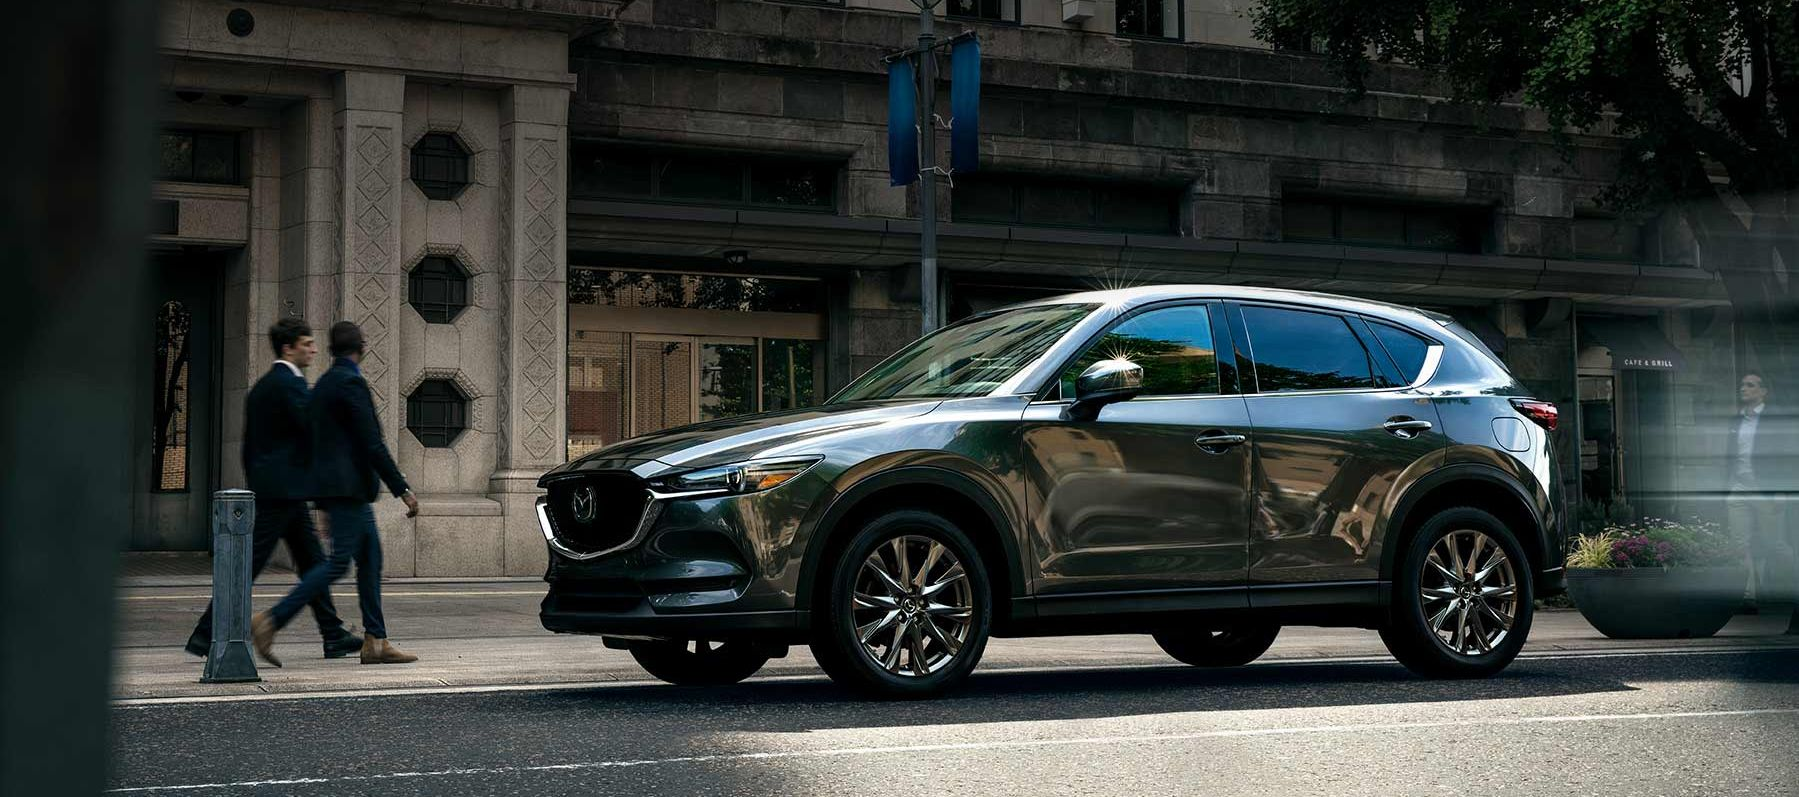 2019 Mazda CX-5 Leasing near Pearland, TX